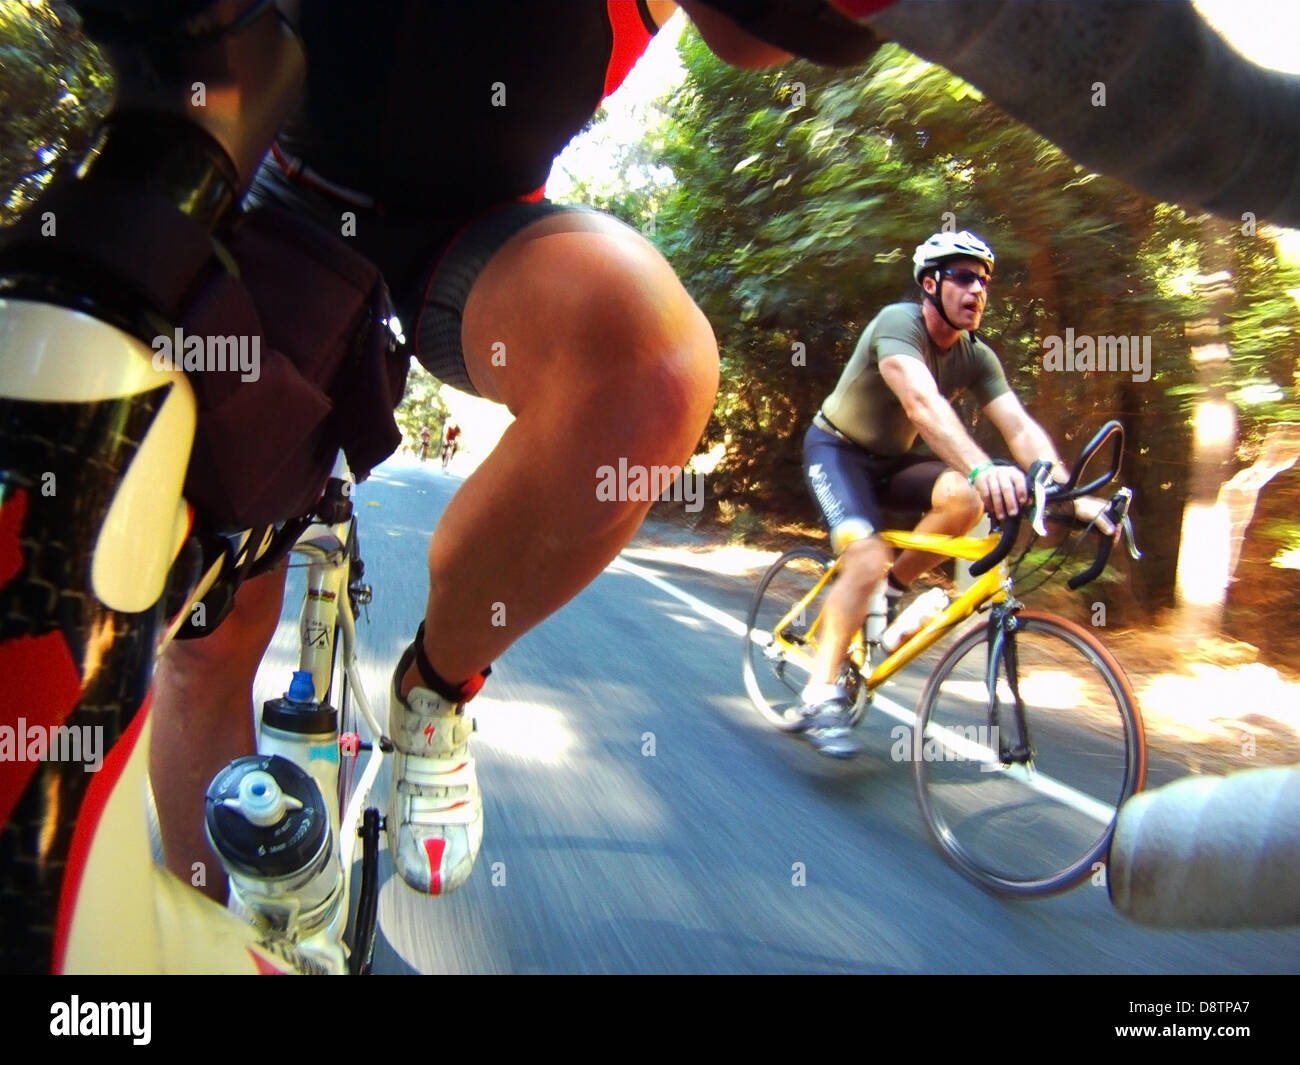 cyclists-racing-downhill-no-mr-or-pr-D8T